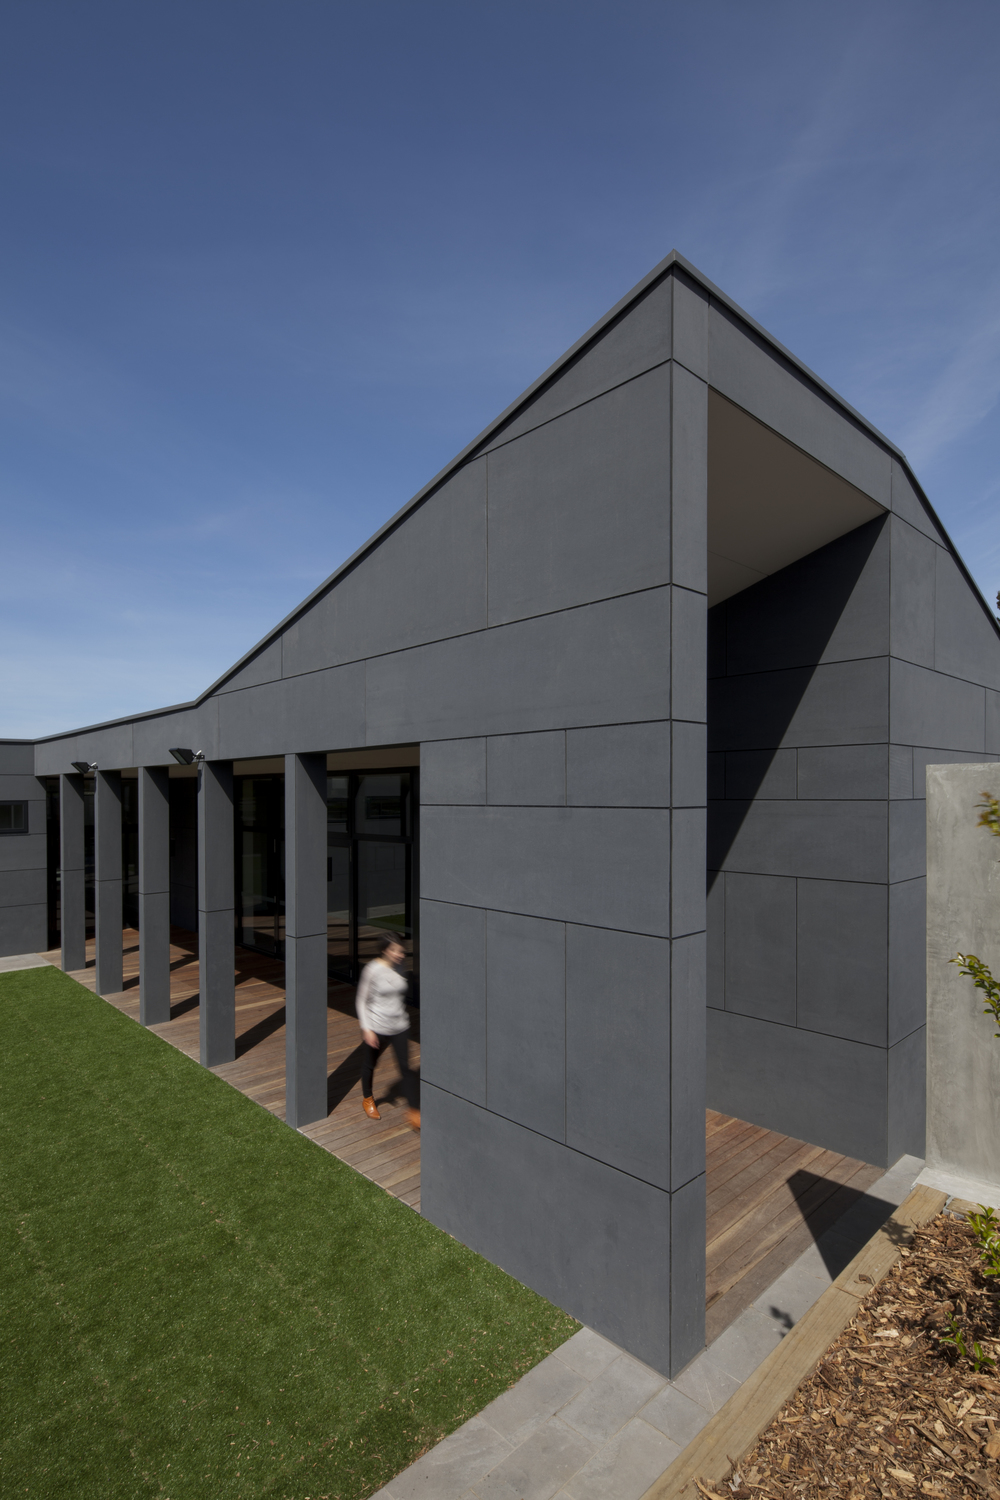 St John's Church, Highton @ Geelong, by tessellate a+d